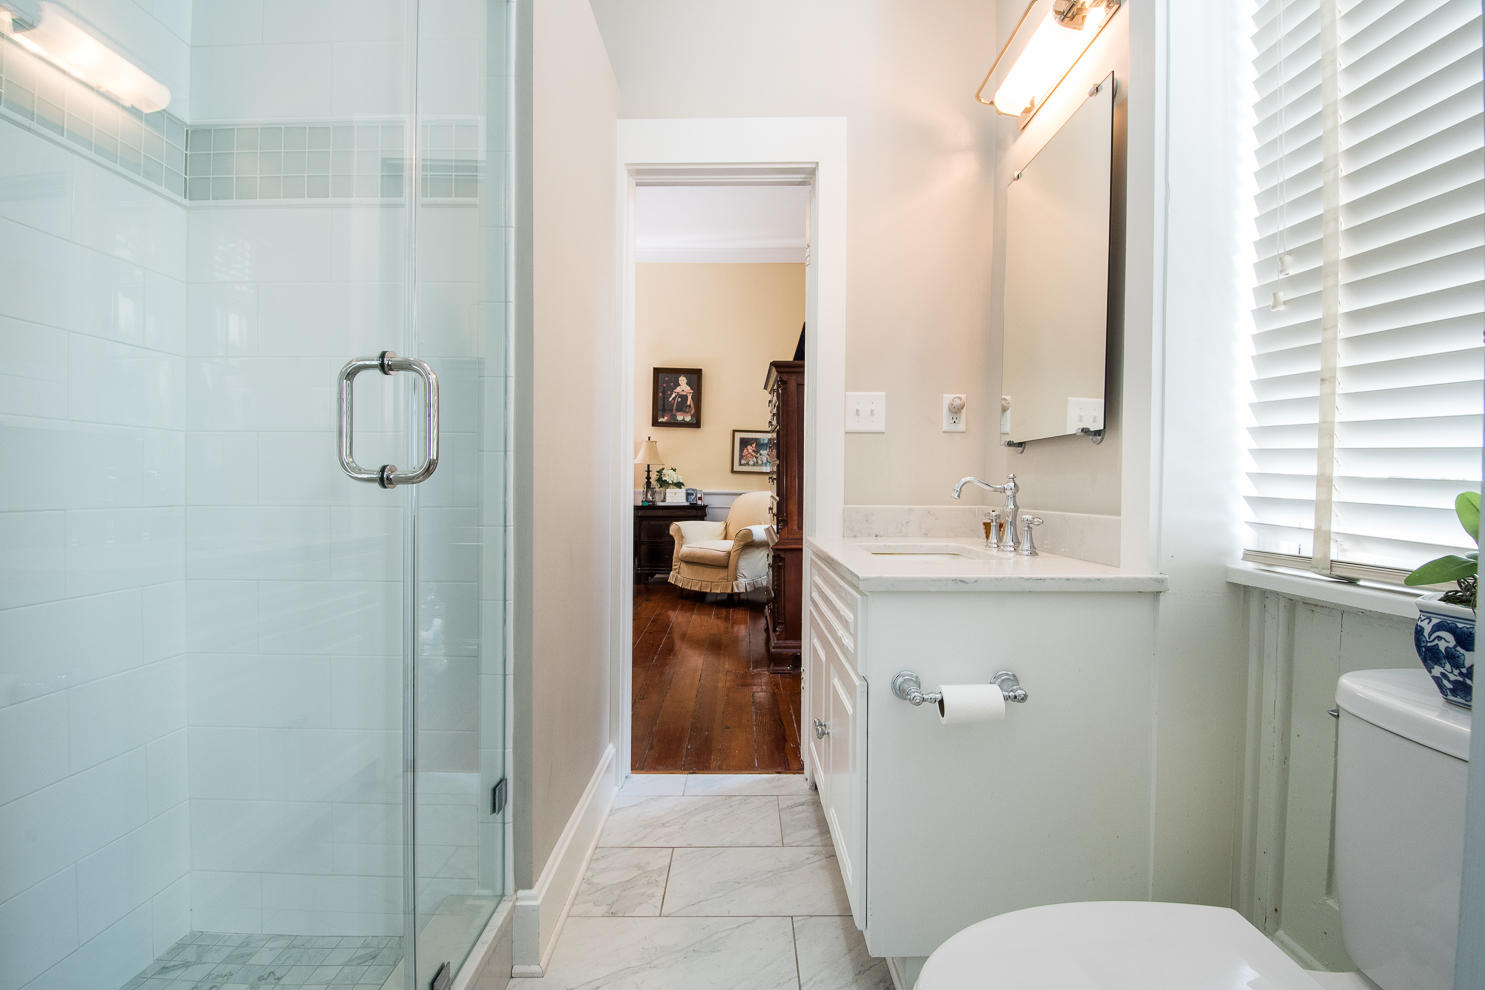 South of Broad Homes For Sale - 1 Prices, Charleston, SC - 41